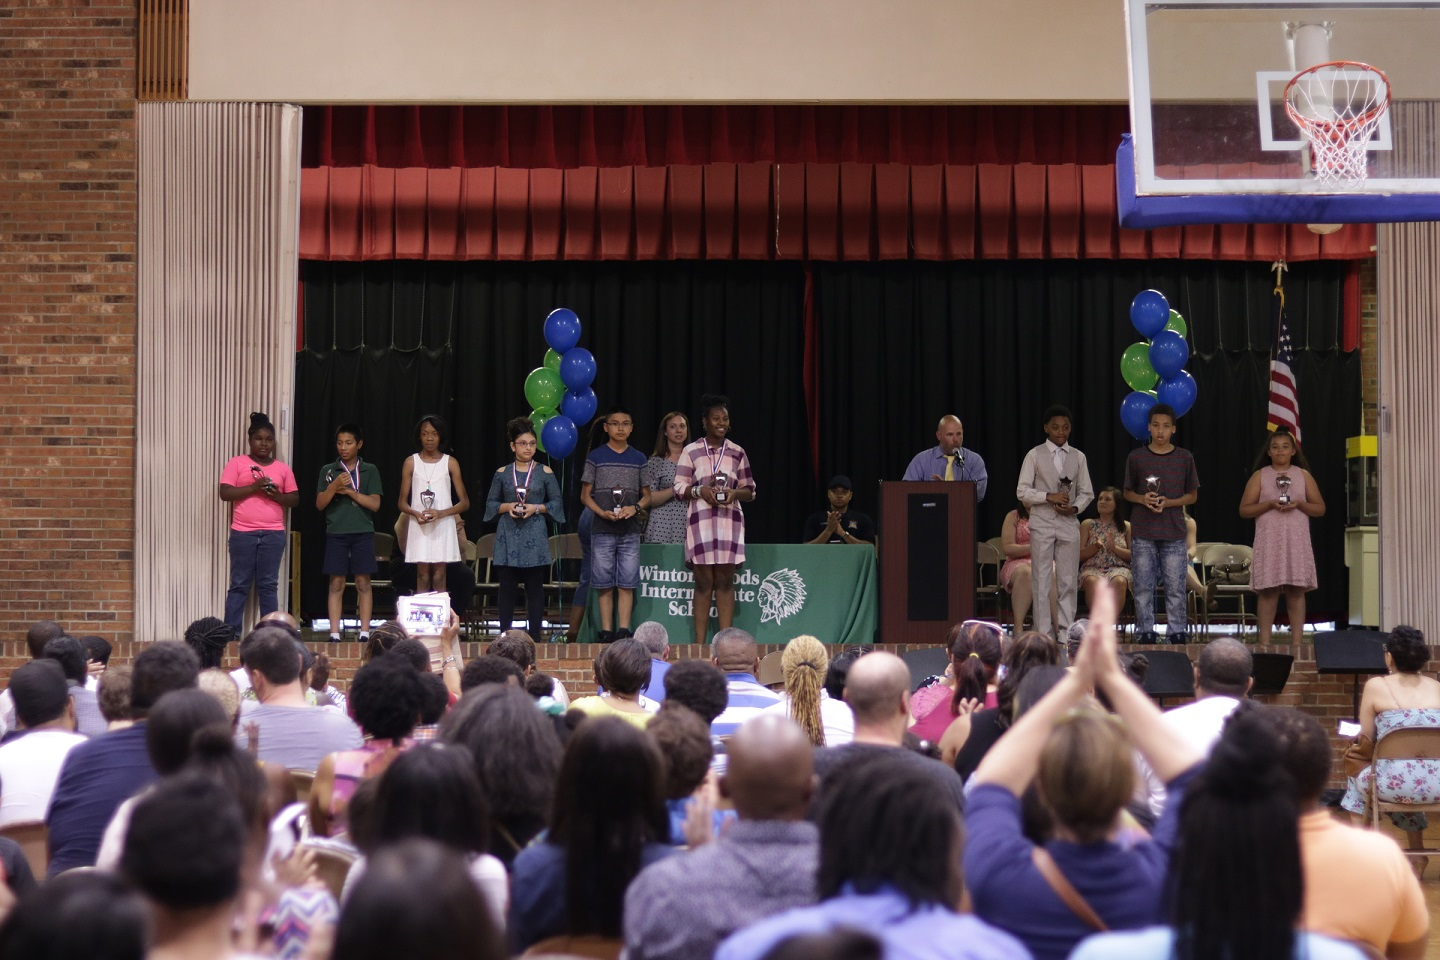 WWIS Principal Jeremy Day presents awards to students in the gymnasium. Photo by Drew Jackson.